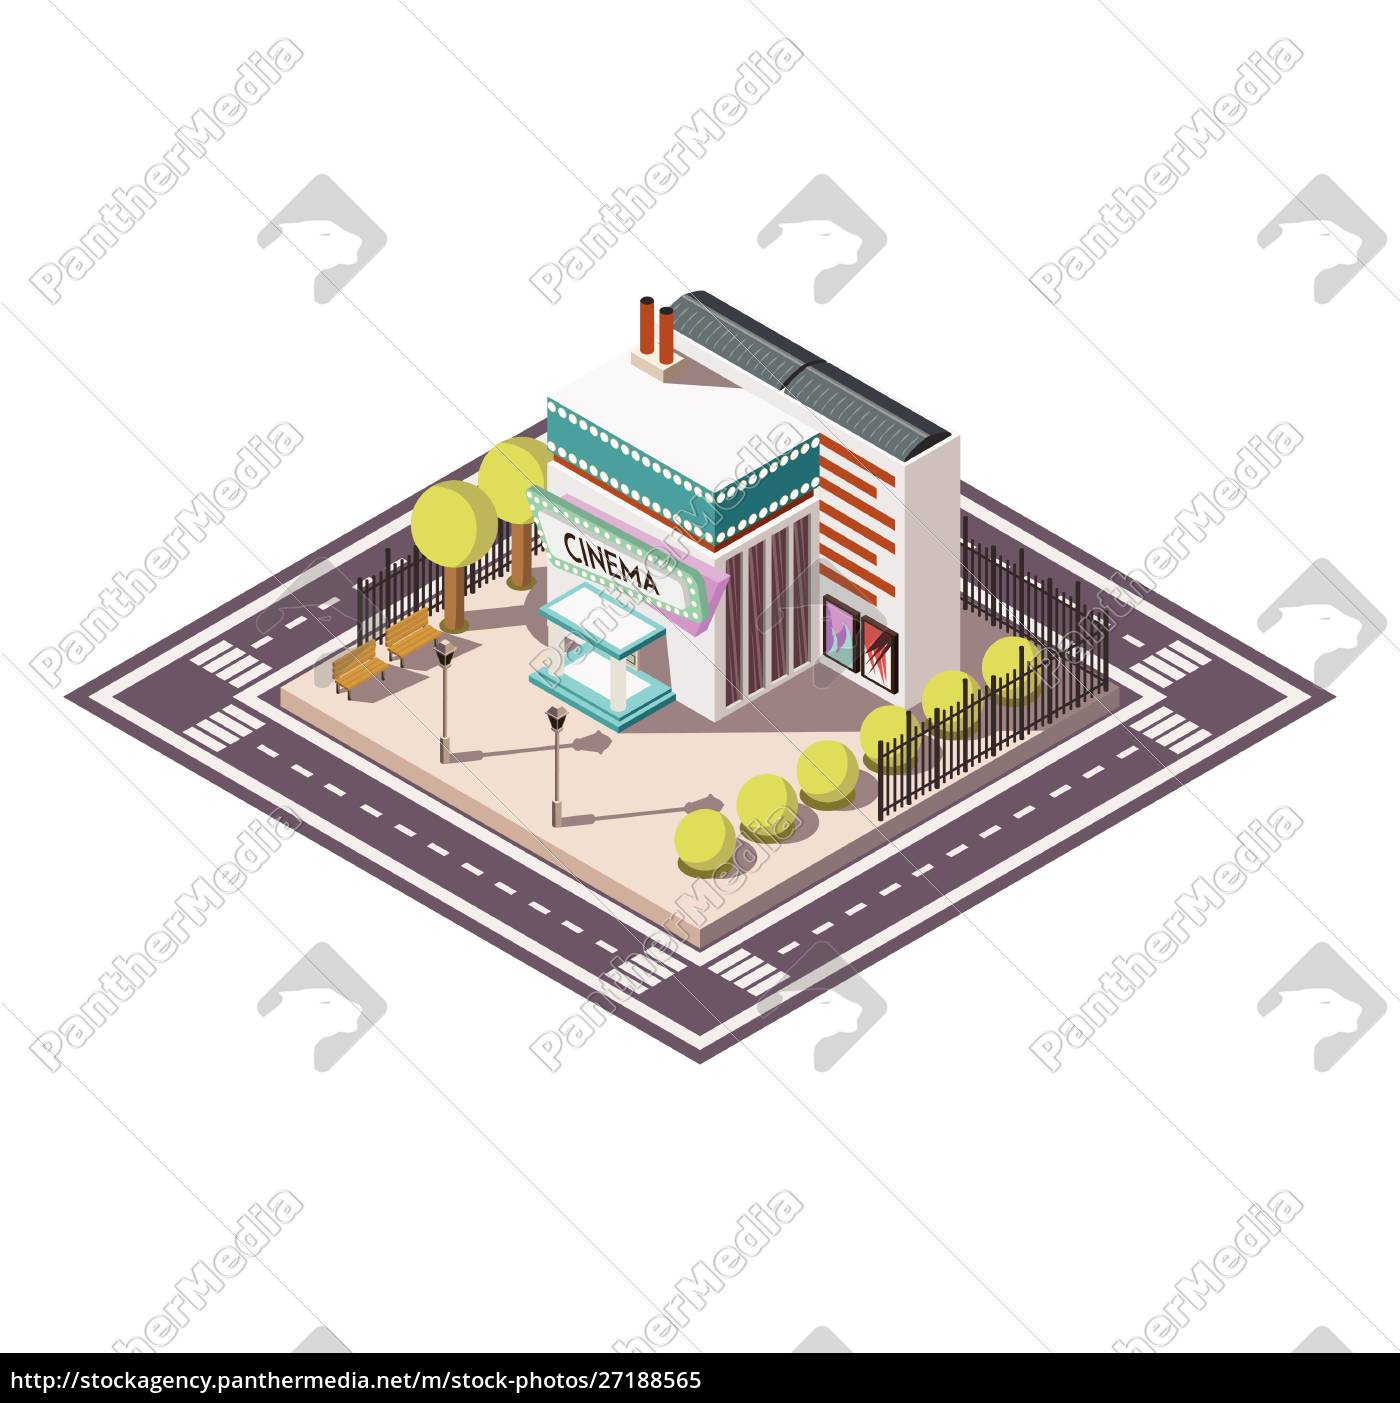 cinema, building, isometric, composition, with, road - 27188565